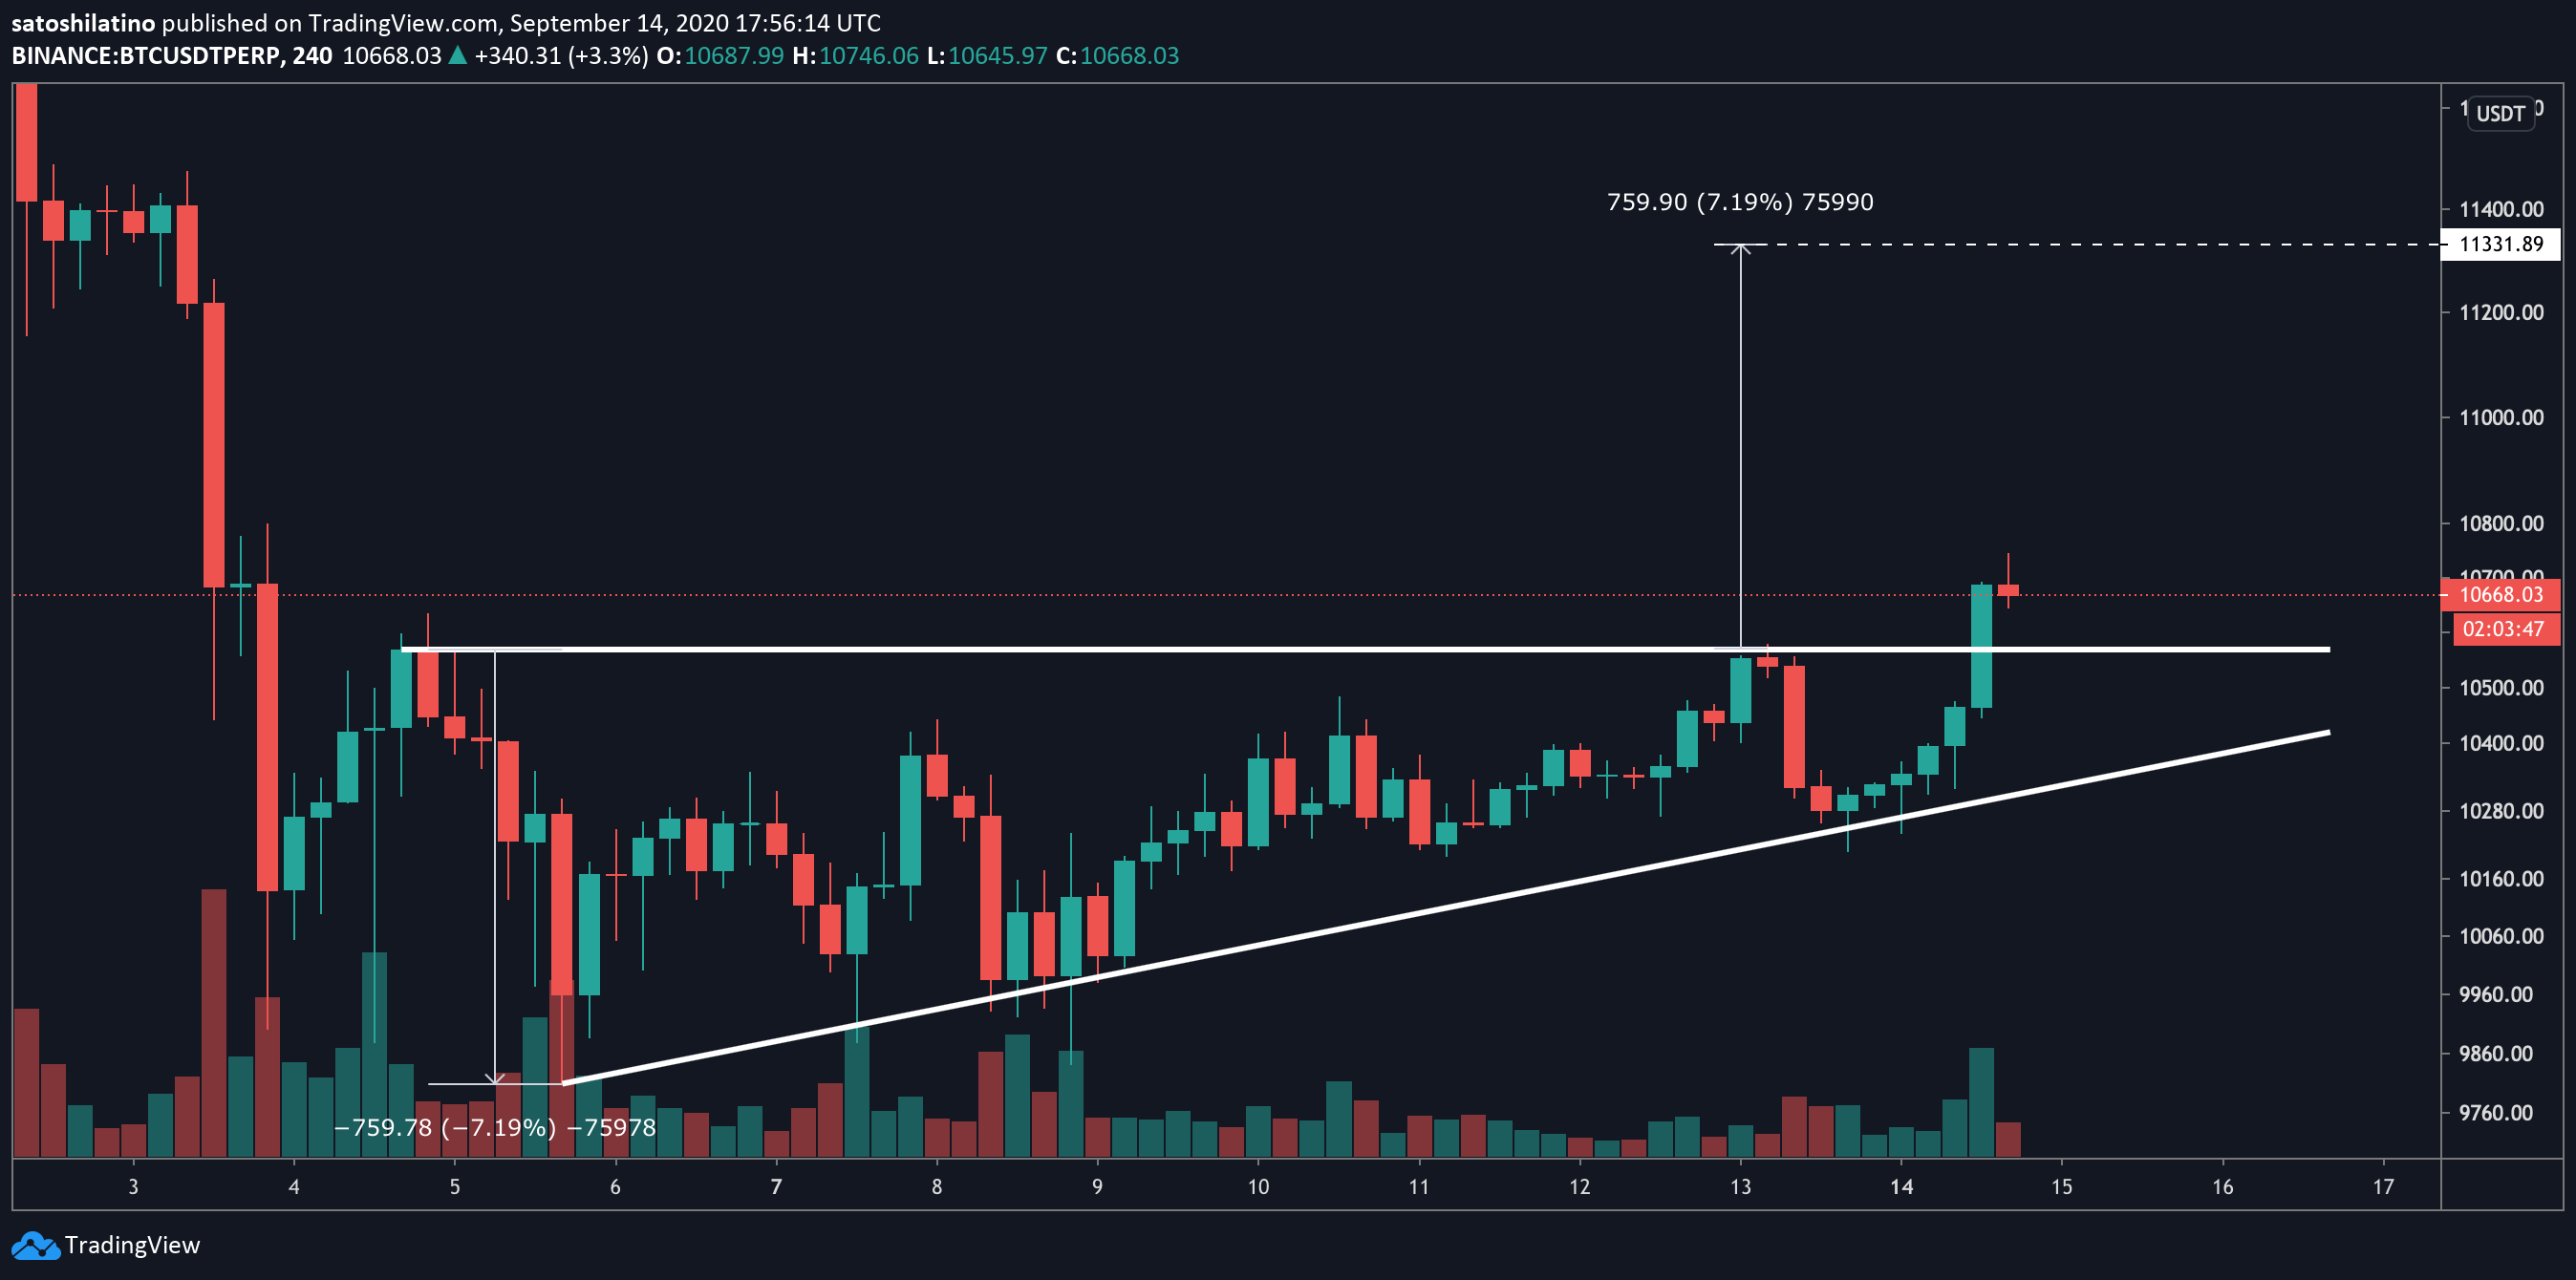 Ascending triangle on a chart of BTC/USDT perpetual contracts on TradingView